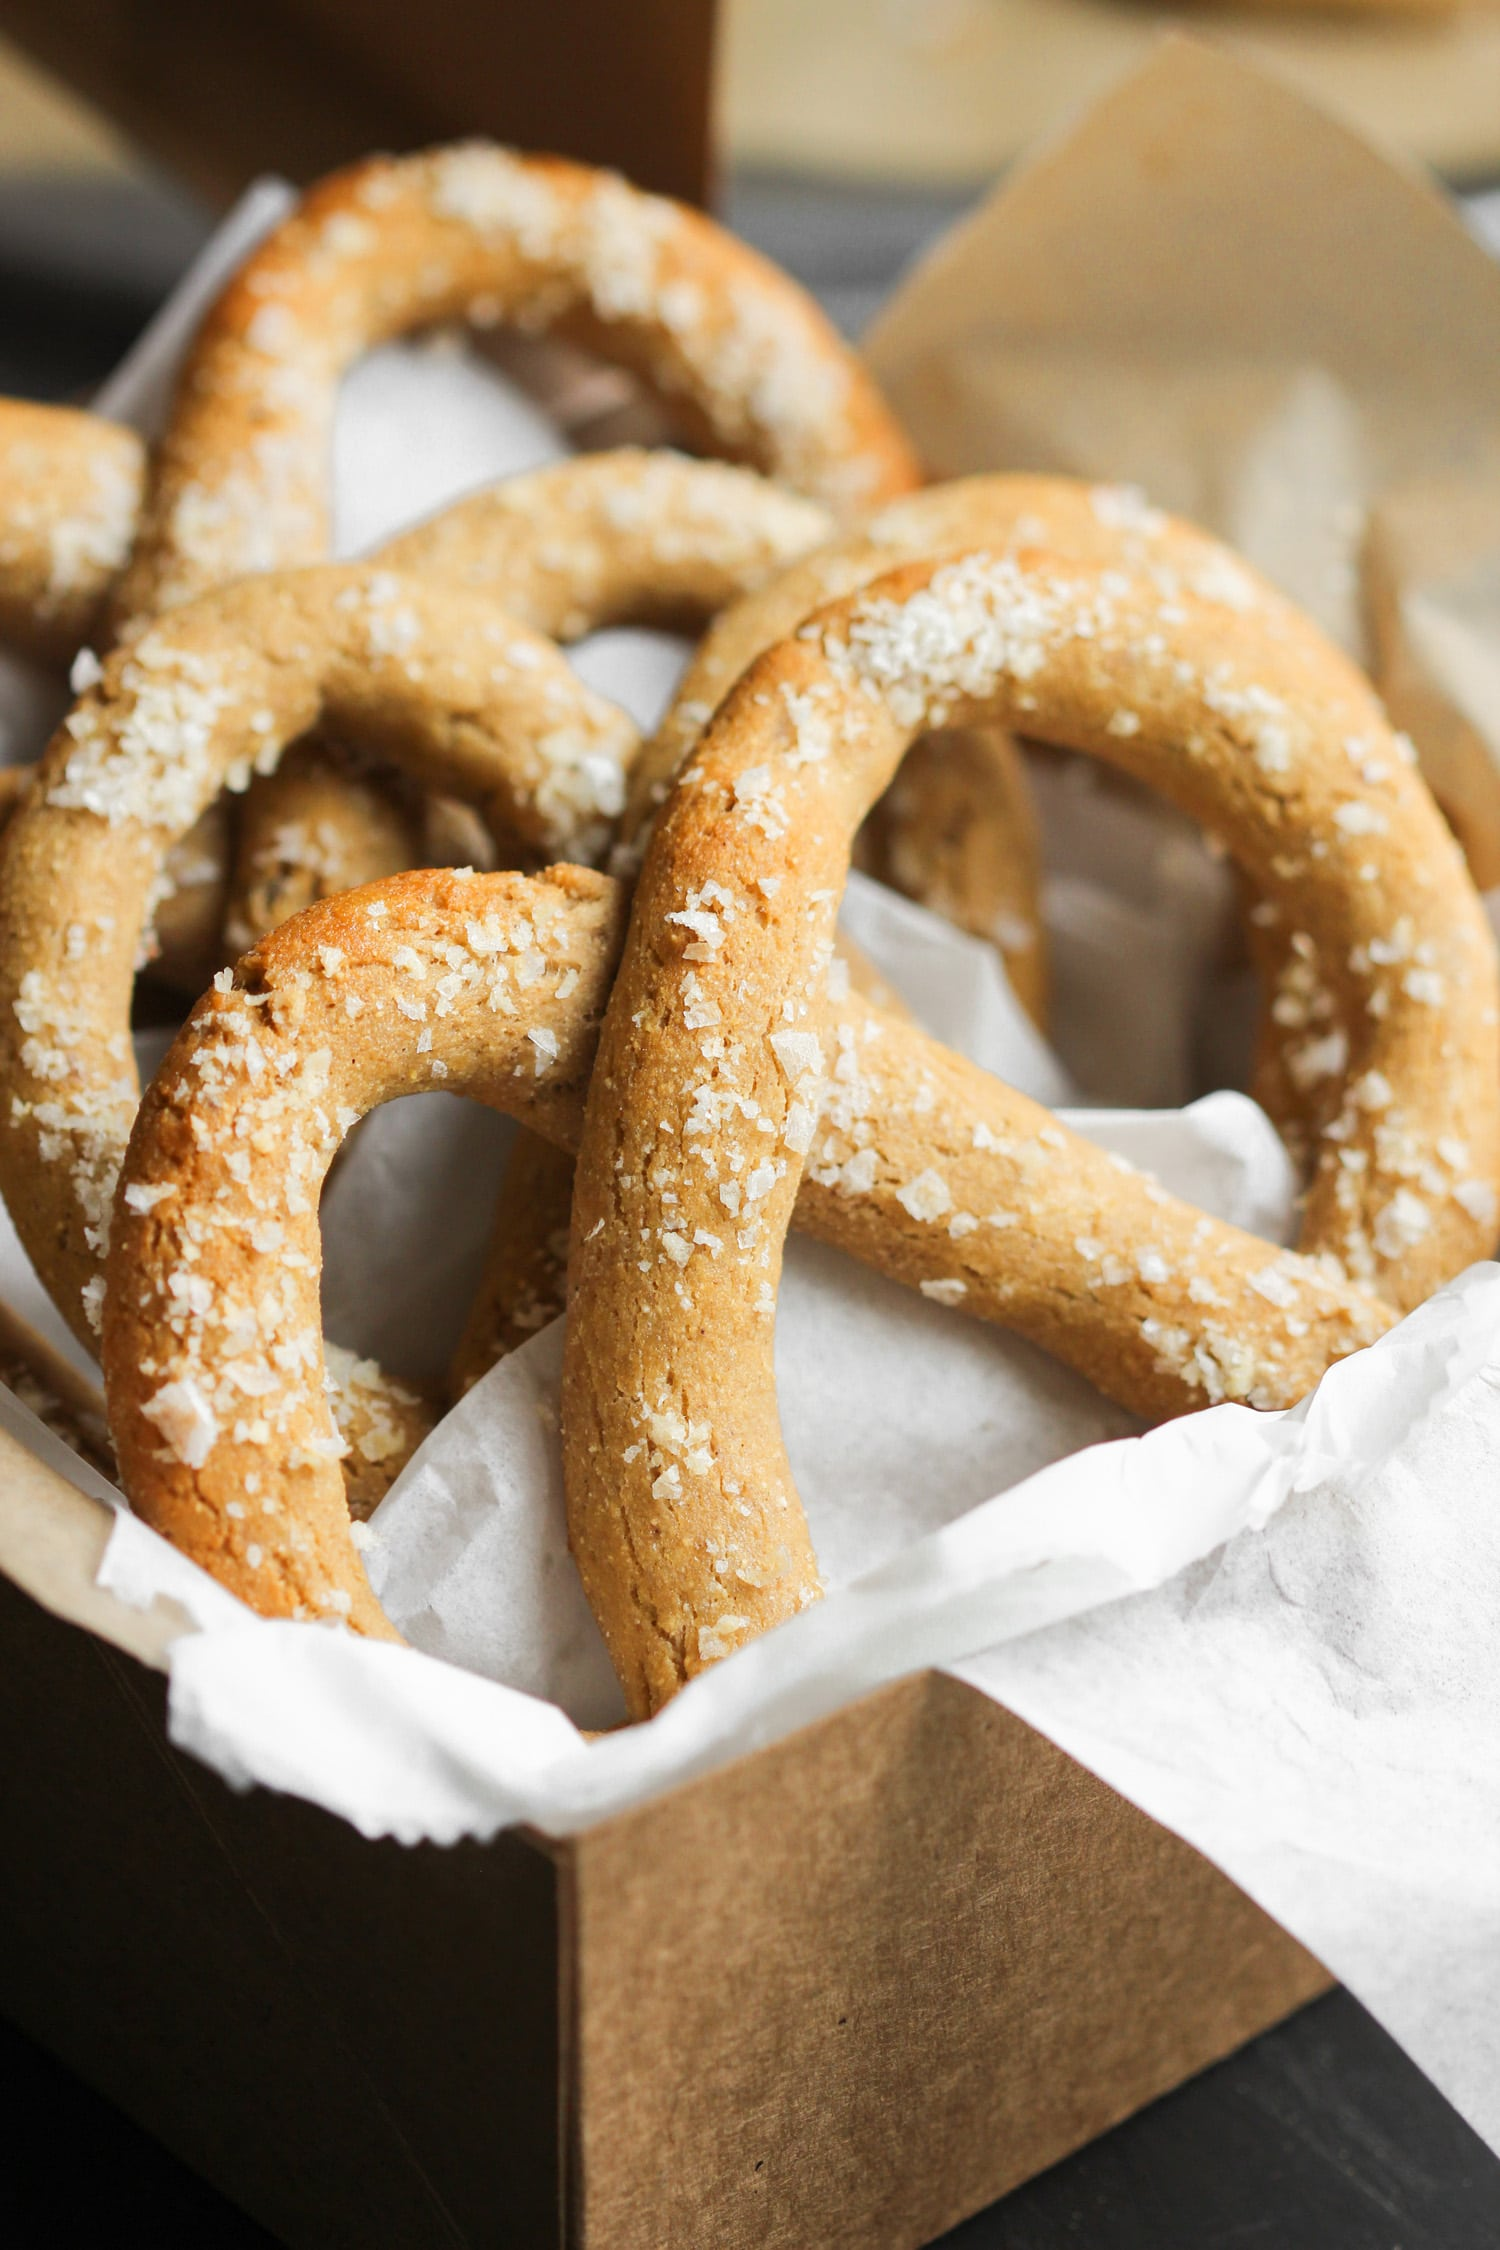 These Healthy Low Carb and Gluten Free Soft Pretzels are so delicious, you'll never believe they're sugar free, high protein, and high in fiber! These Gluten Free Pretzels taste like pure sin, but they're sinlessly delicious! Healthy Dessert Recipes with low calorie, low fat, dairy free, and vegan options at the Desserts With Benefits Blog (www.DessertsWithBenefits.com)